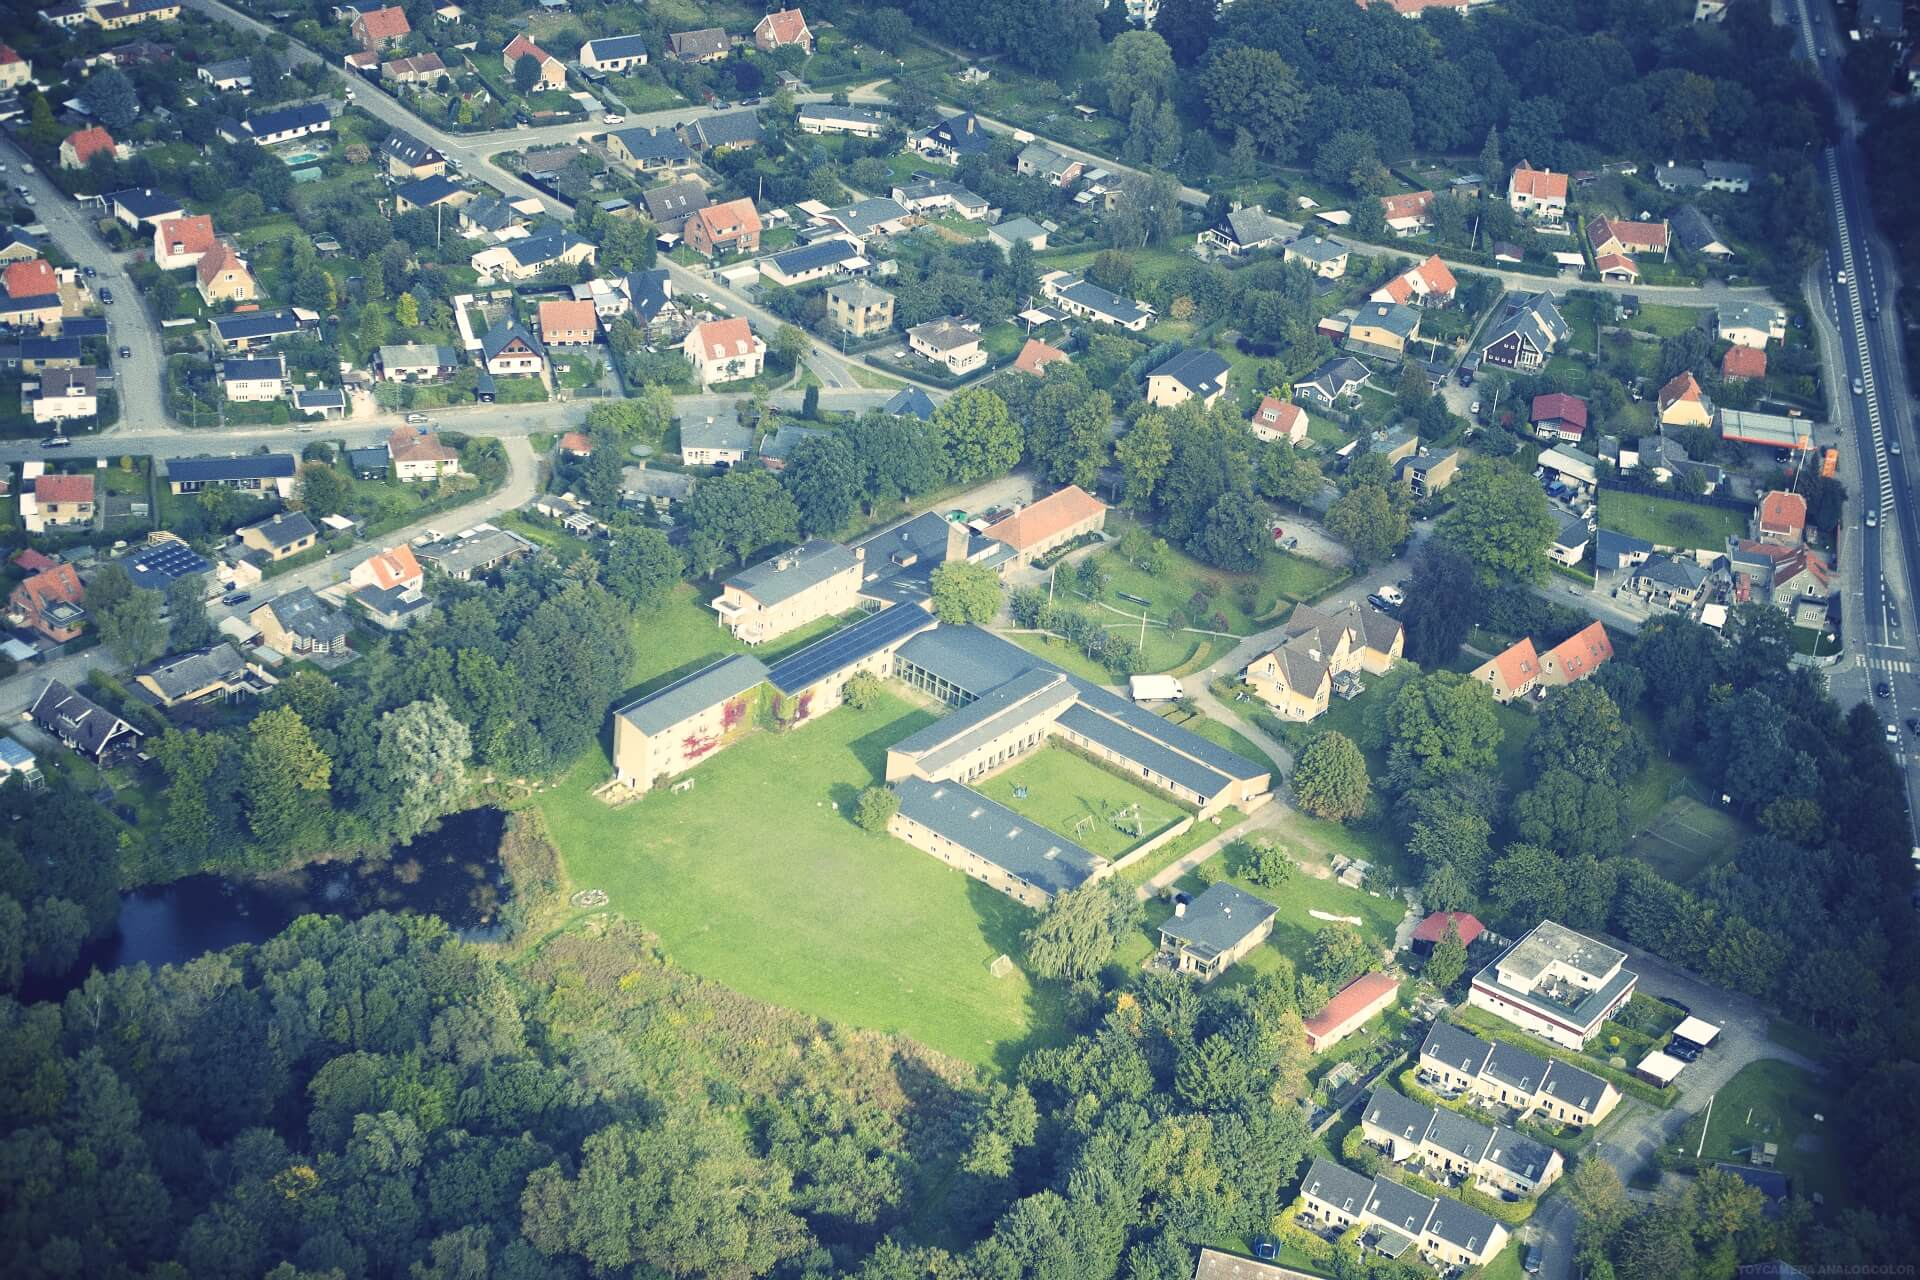 IPC - Folk High School Aerial photo of International People's College in Denmark